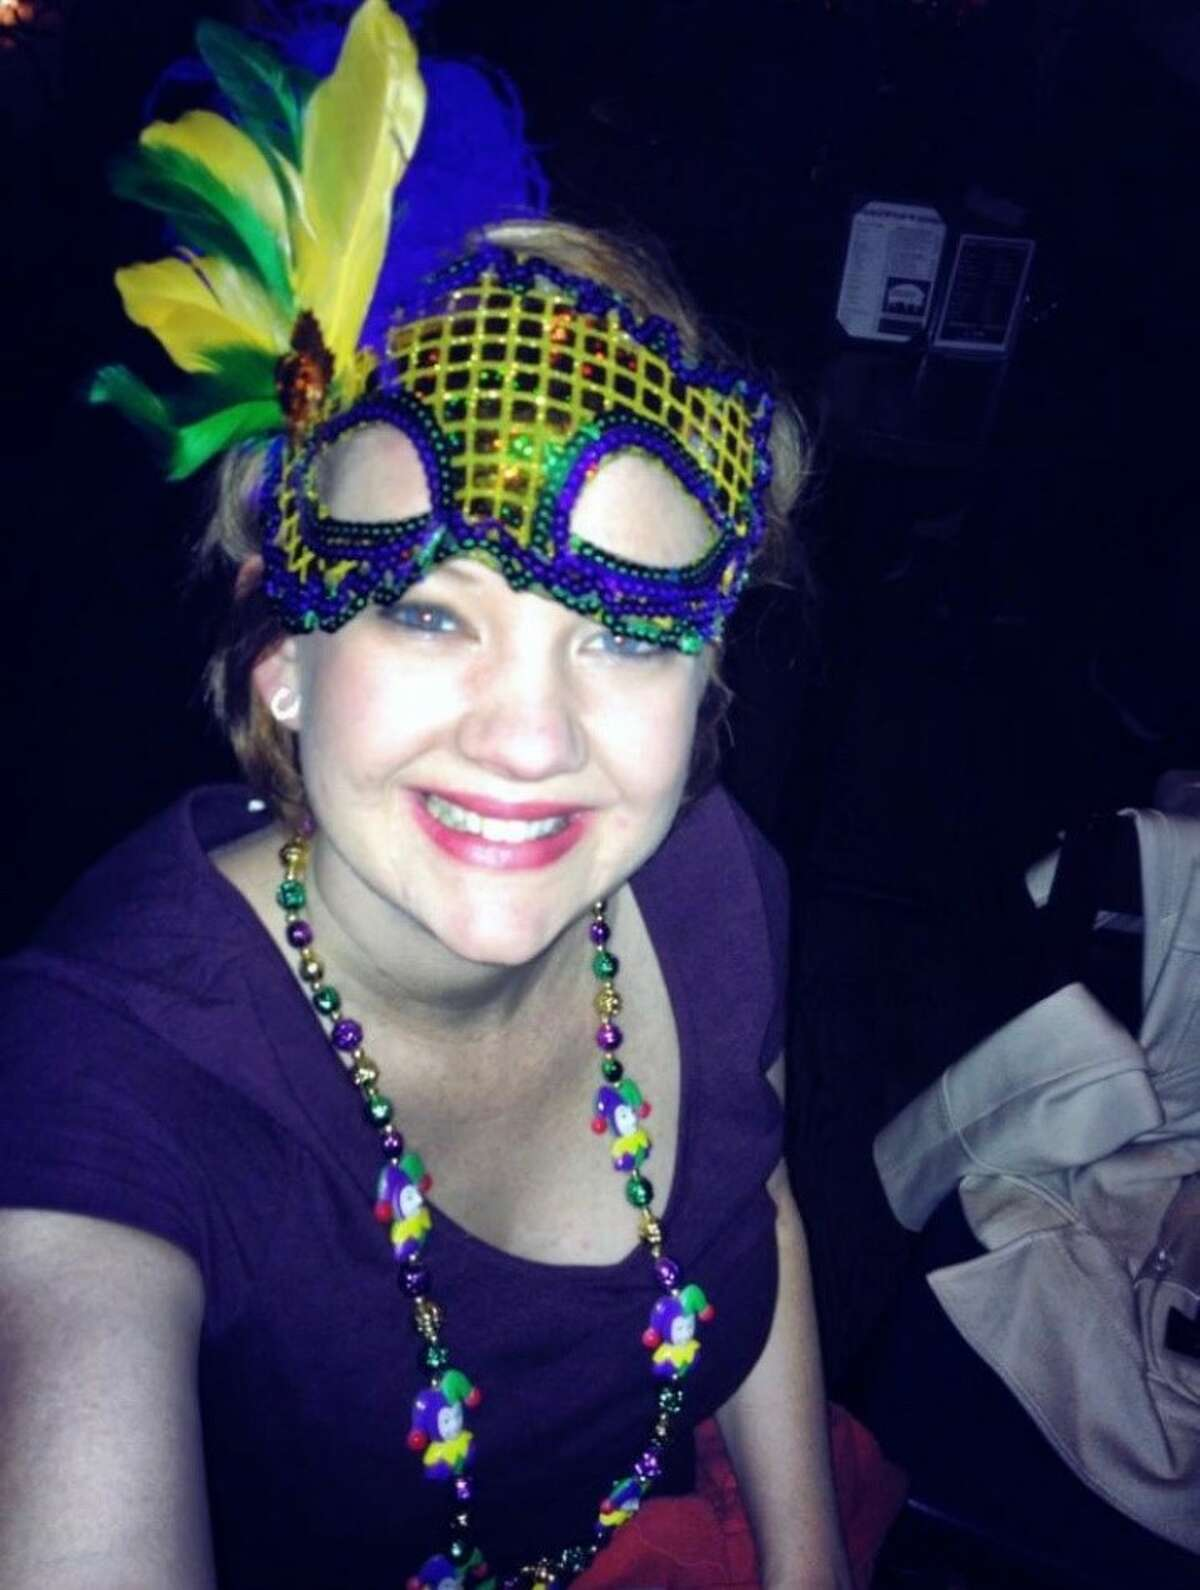 2. I'm from New Orleans and my favorite season is Mardi Gras.